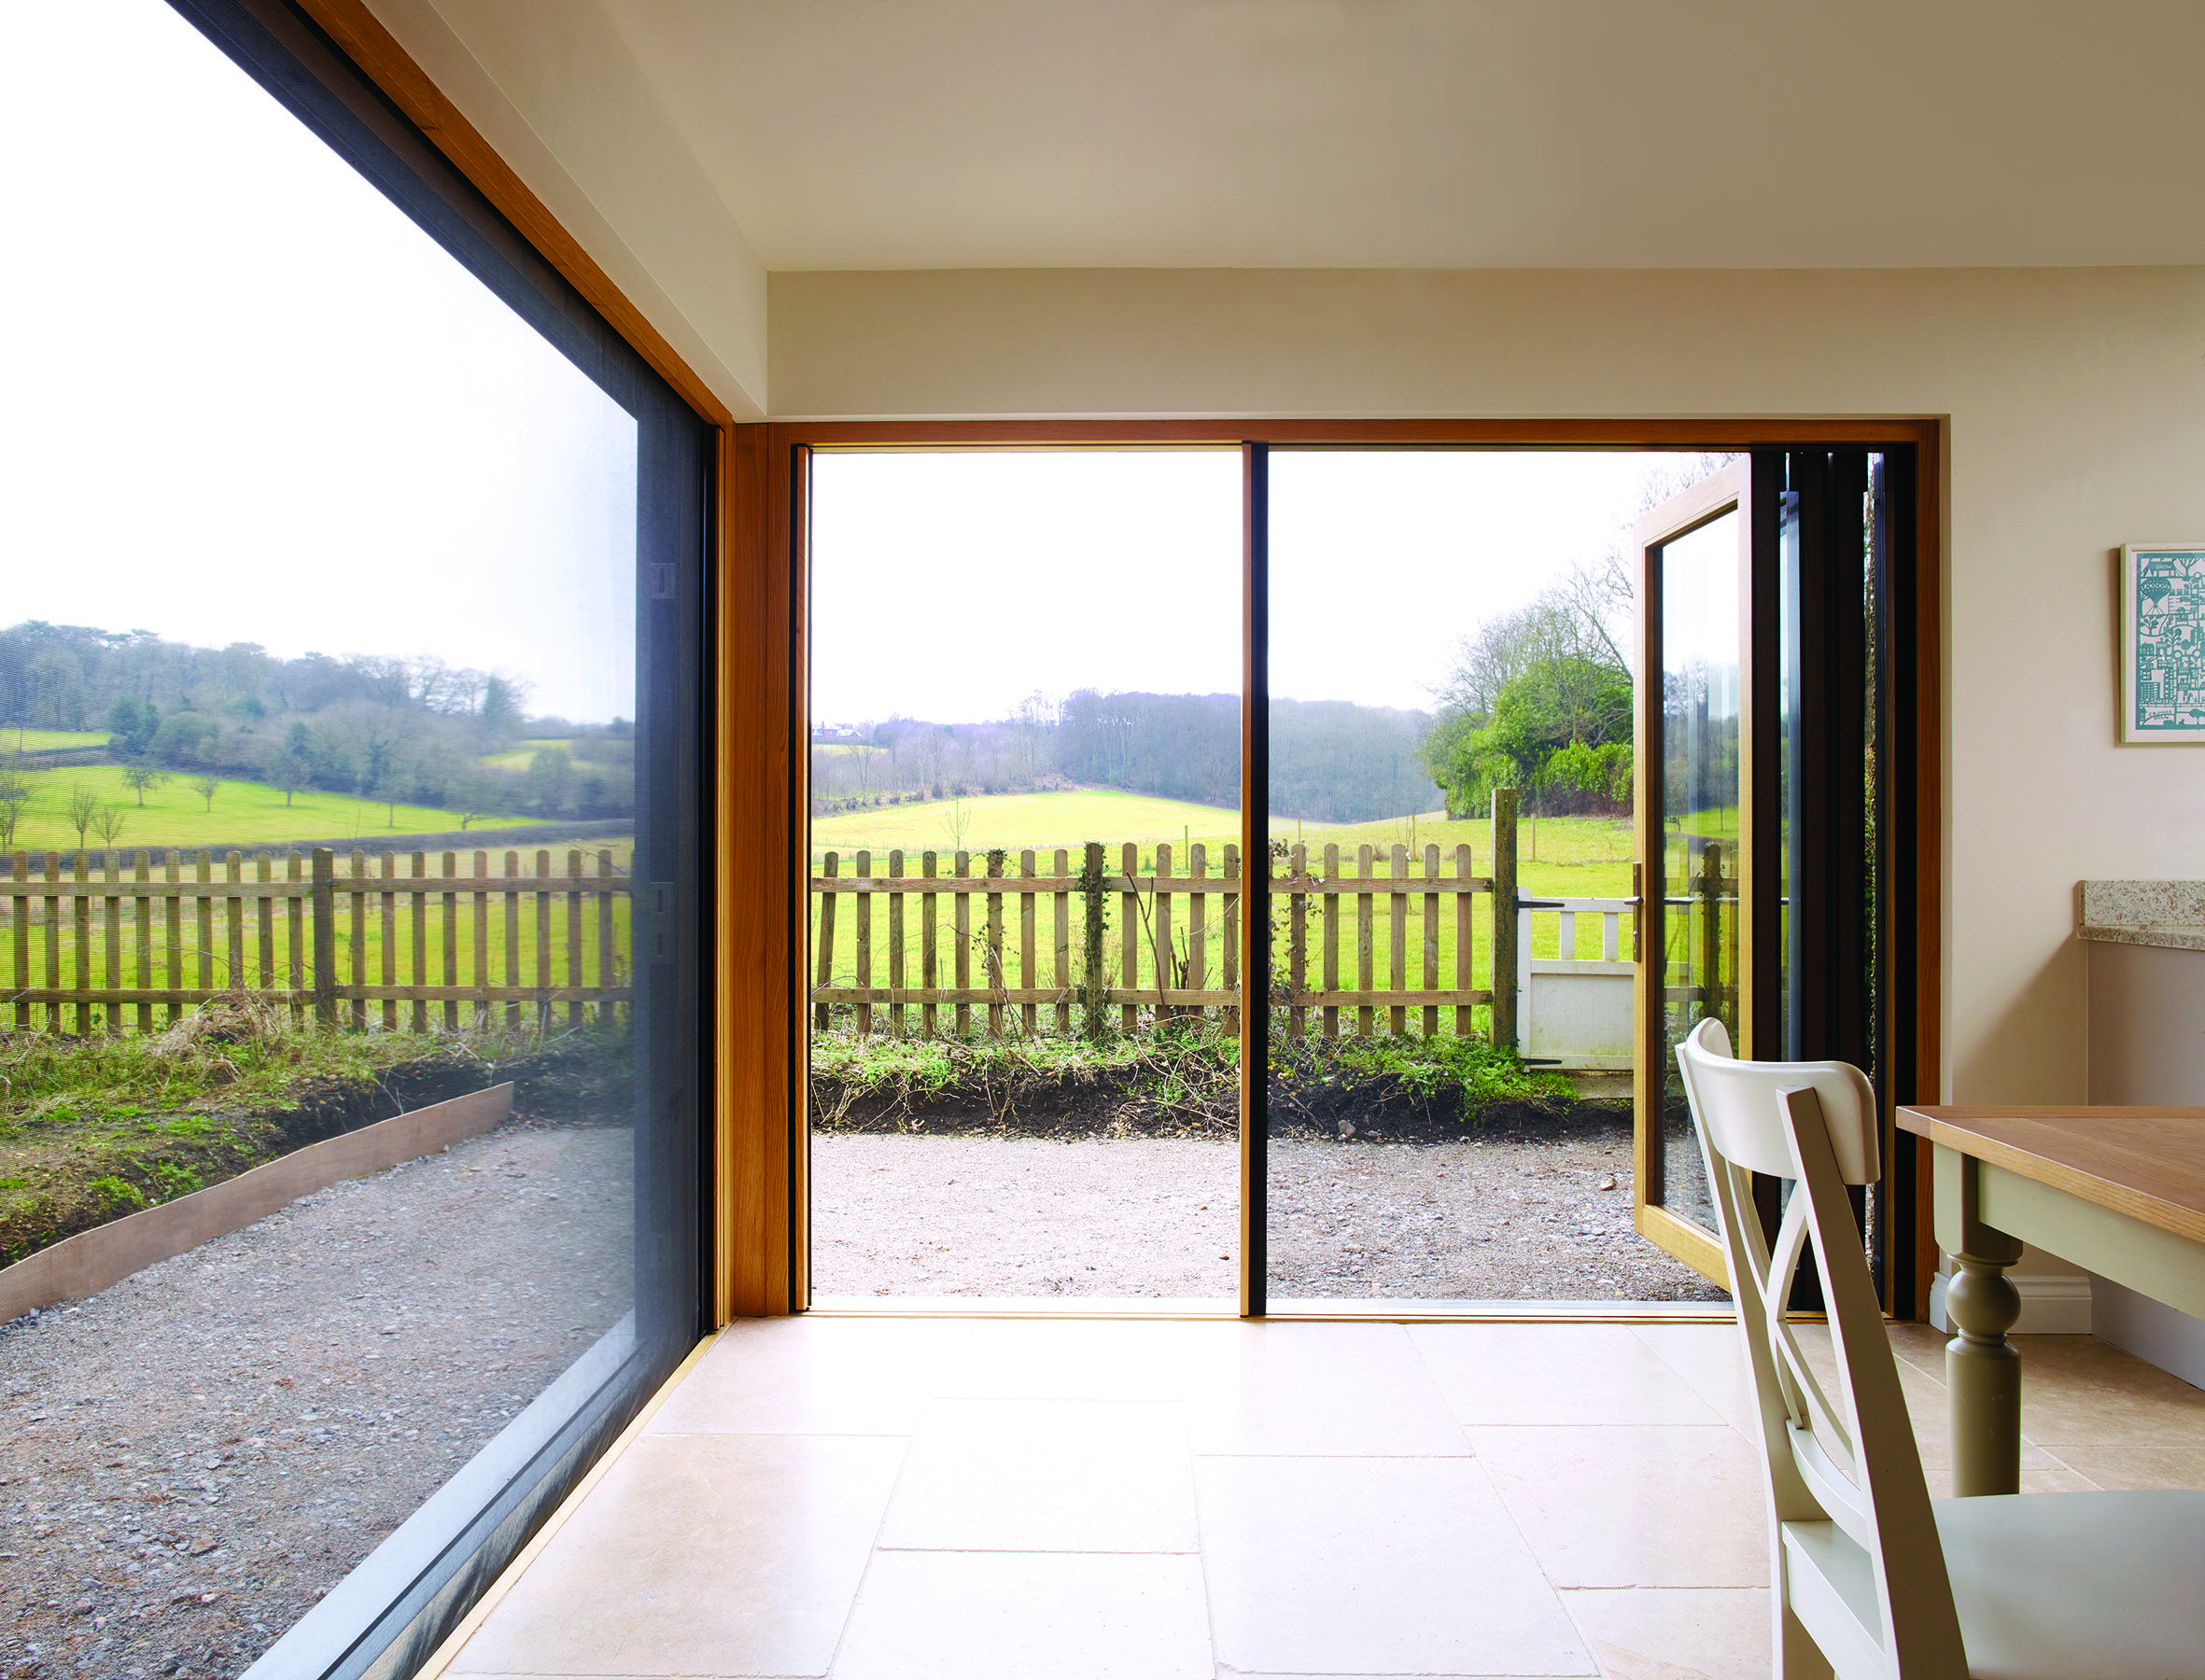 Centor Integrated Doors with built-in insect screen installed in a home in the English countryside & Centor Integrated Doors with built-in insect screen installed in a ...